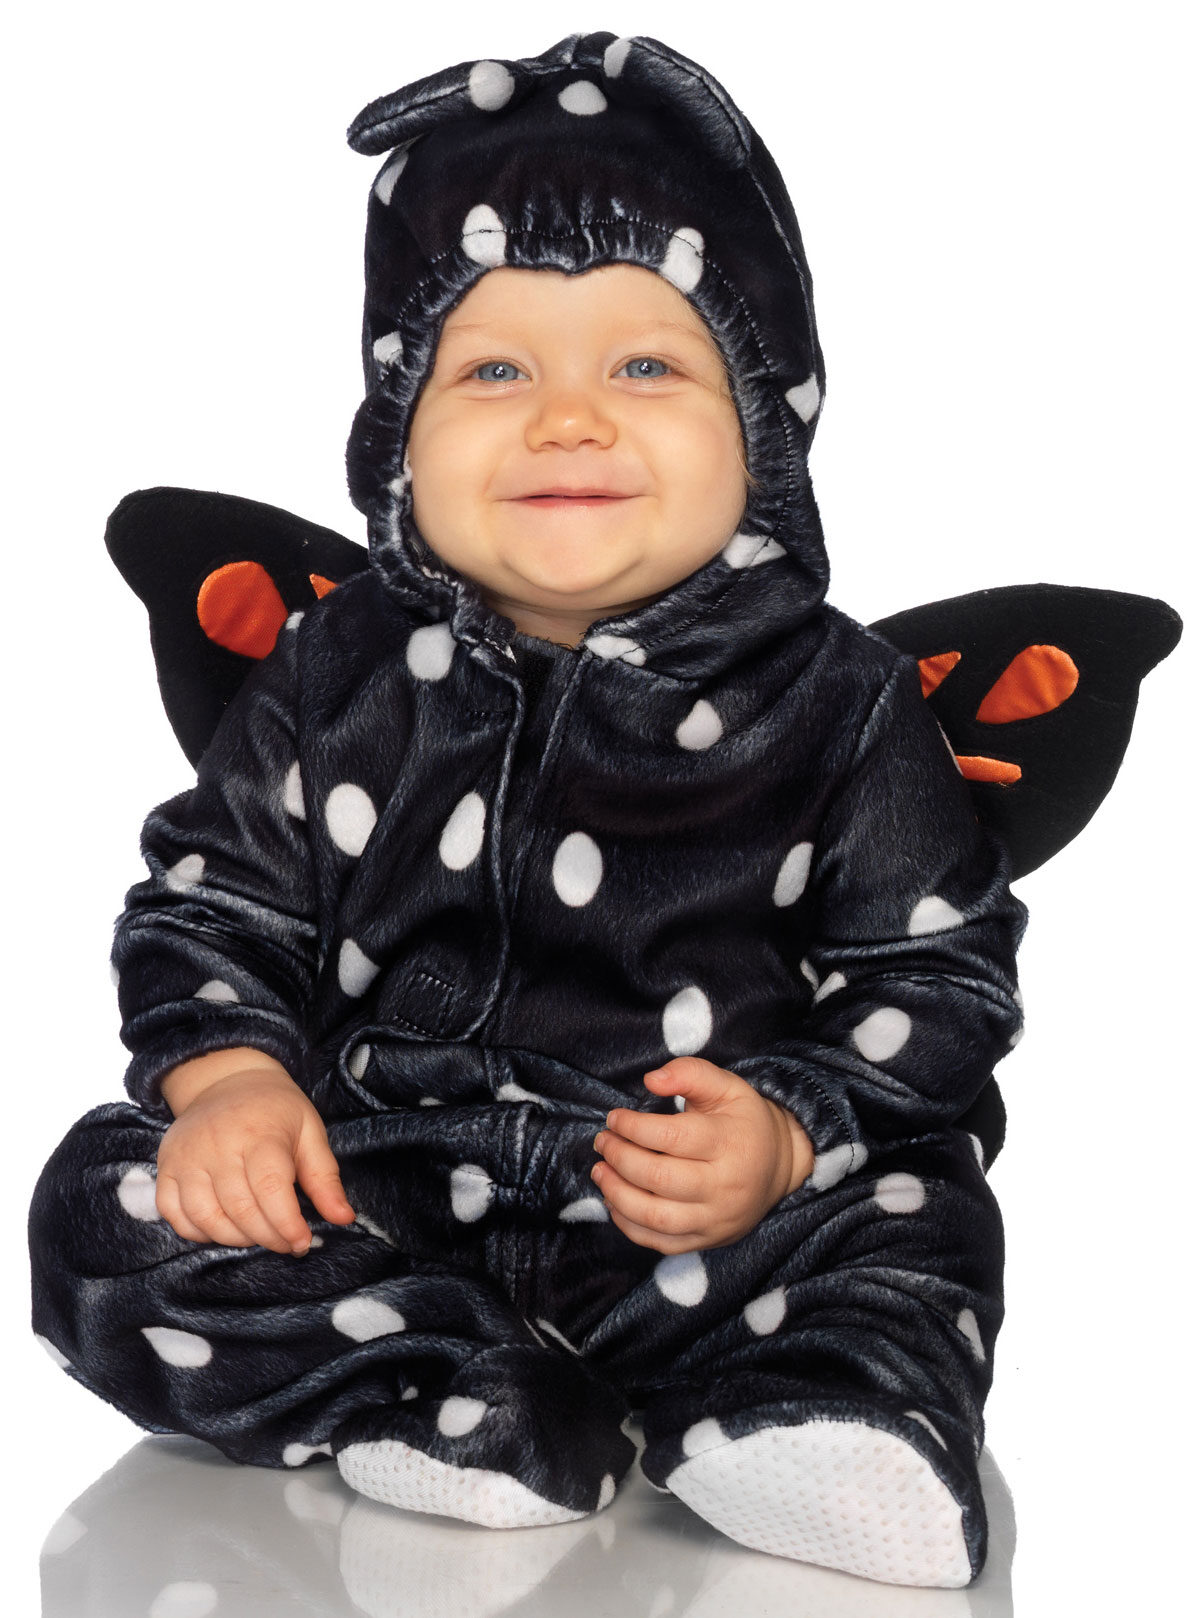 Toddler Halloween Costumes - Mr. Costumes